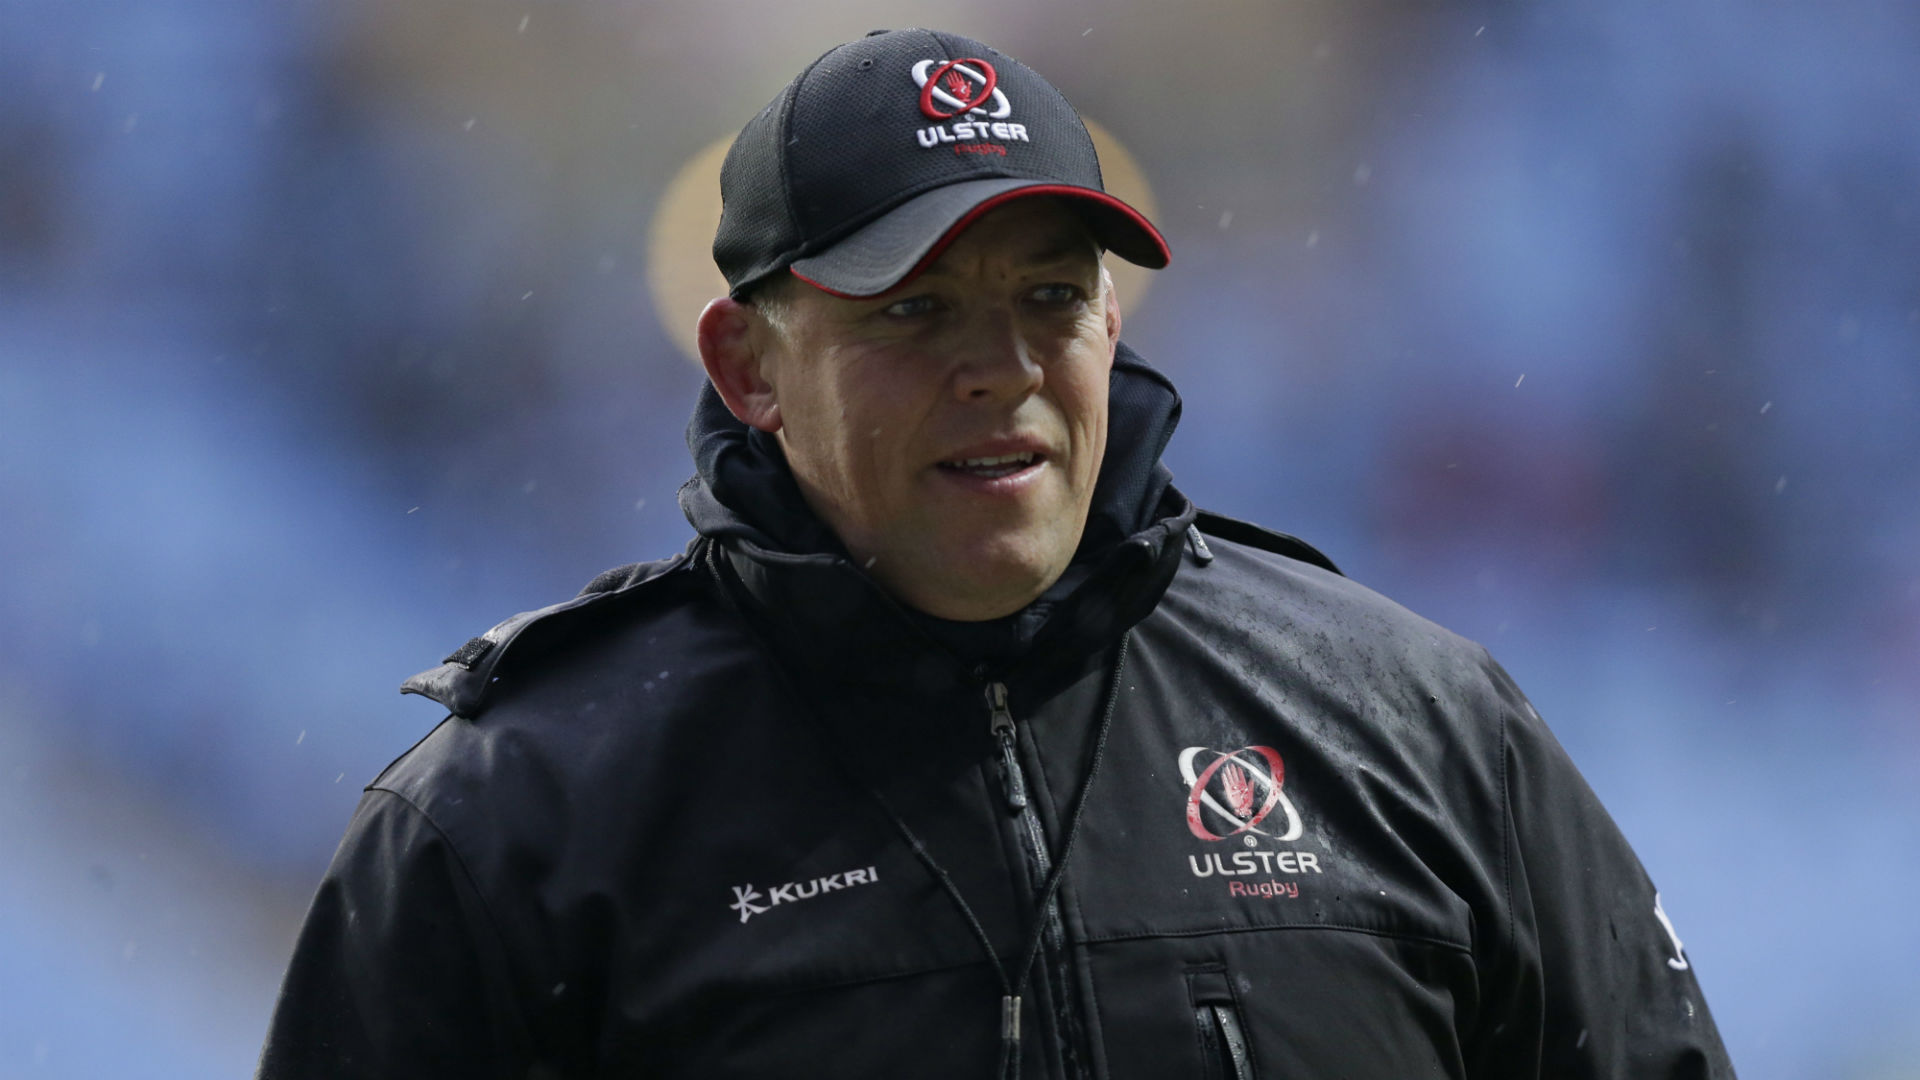 Ulster are on the hunt for a new coach after Jono Gibbes' decision to leave the Irish province at the end of the Pro14 season.